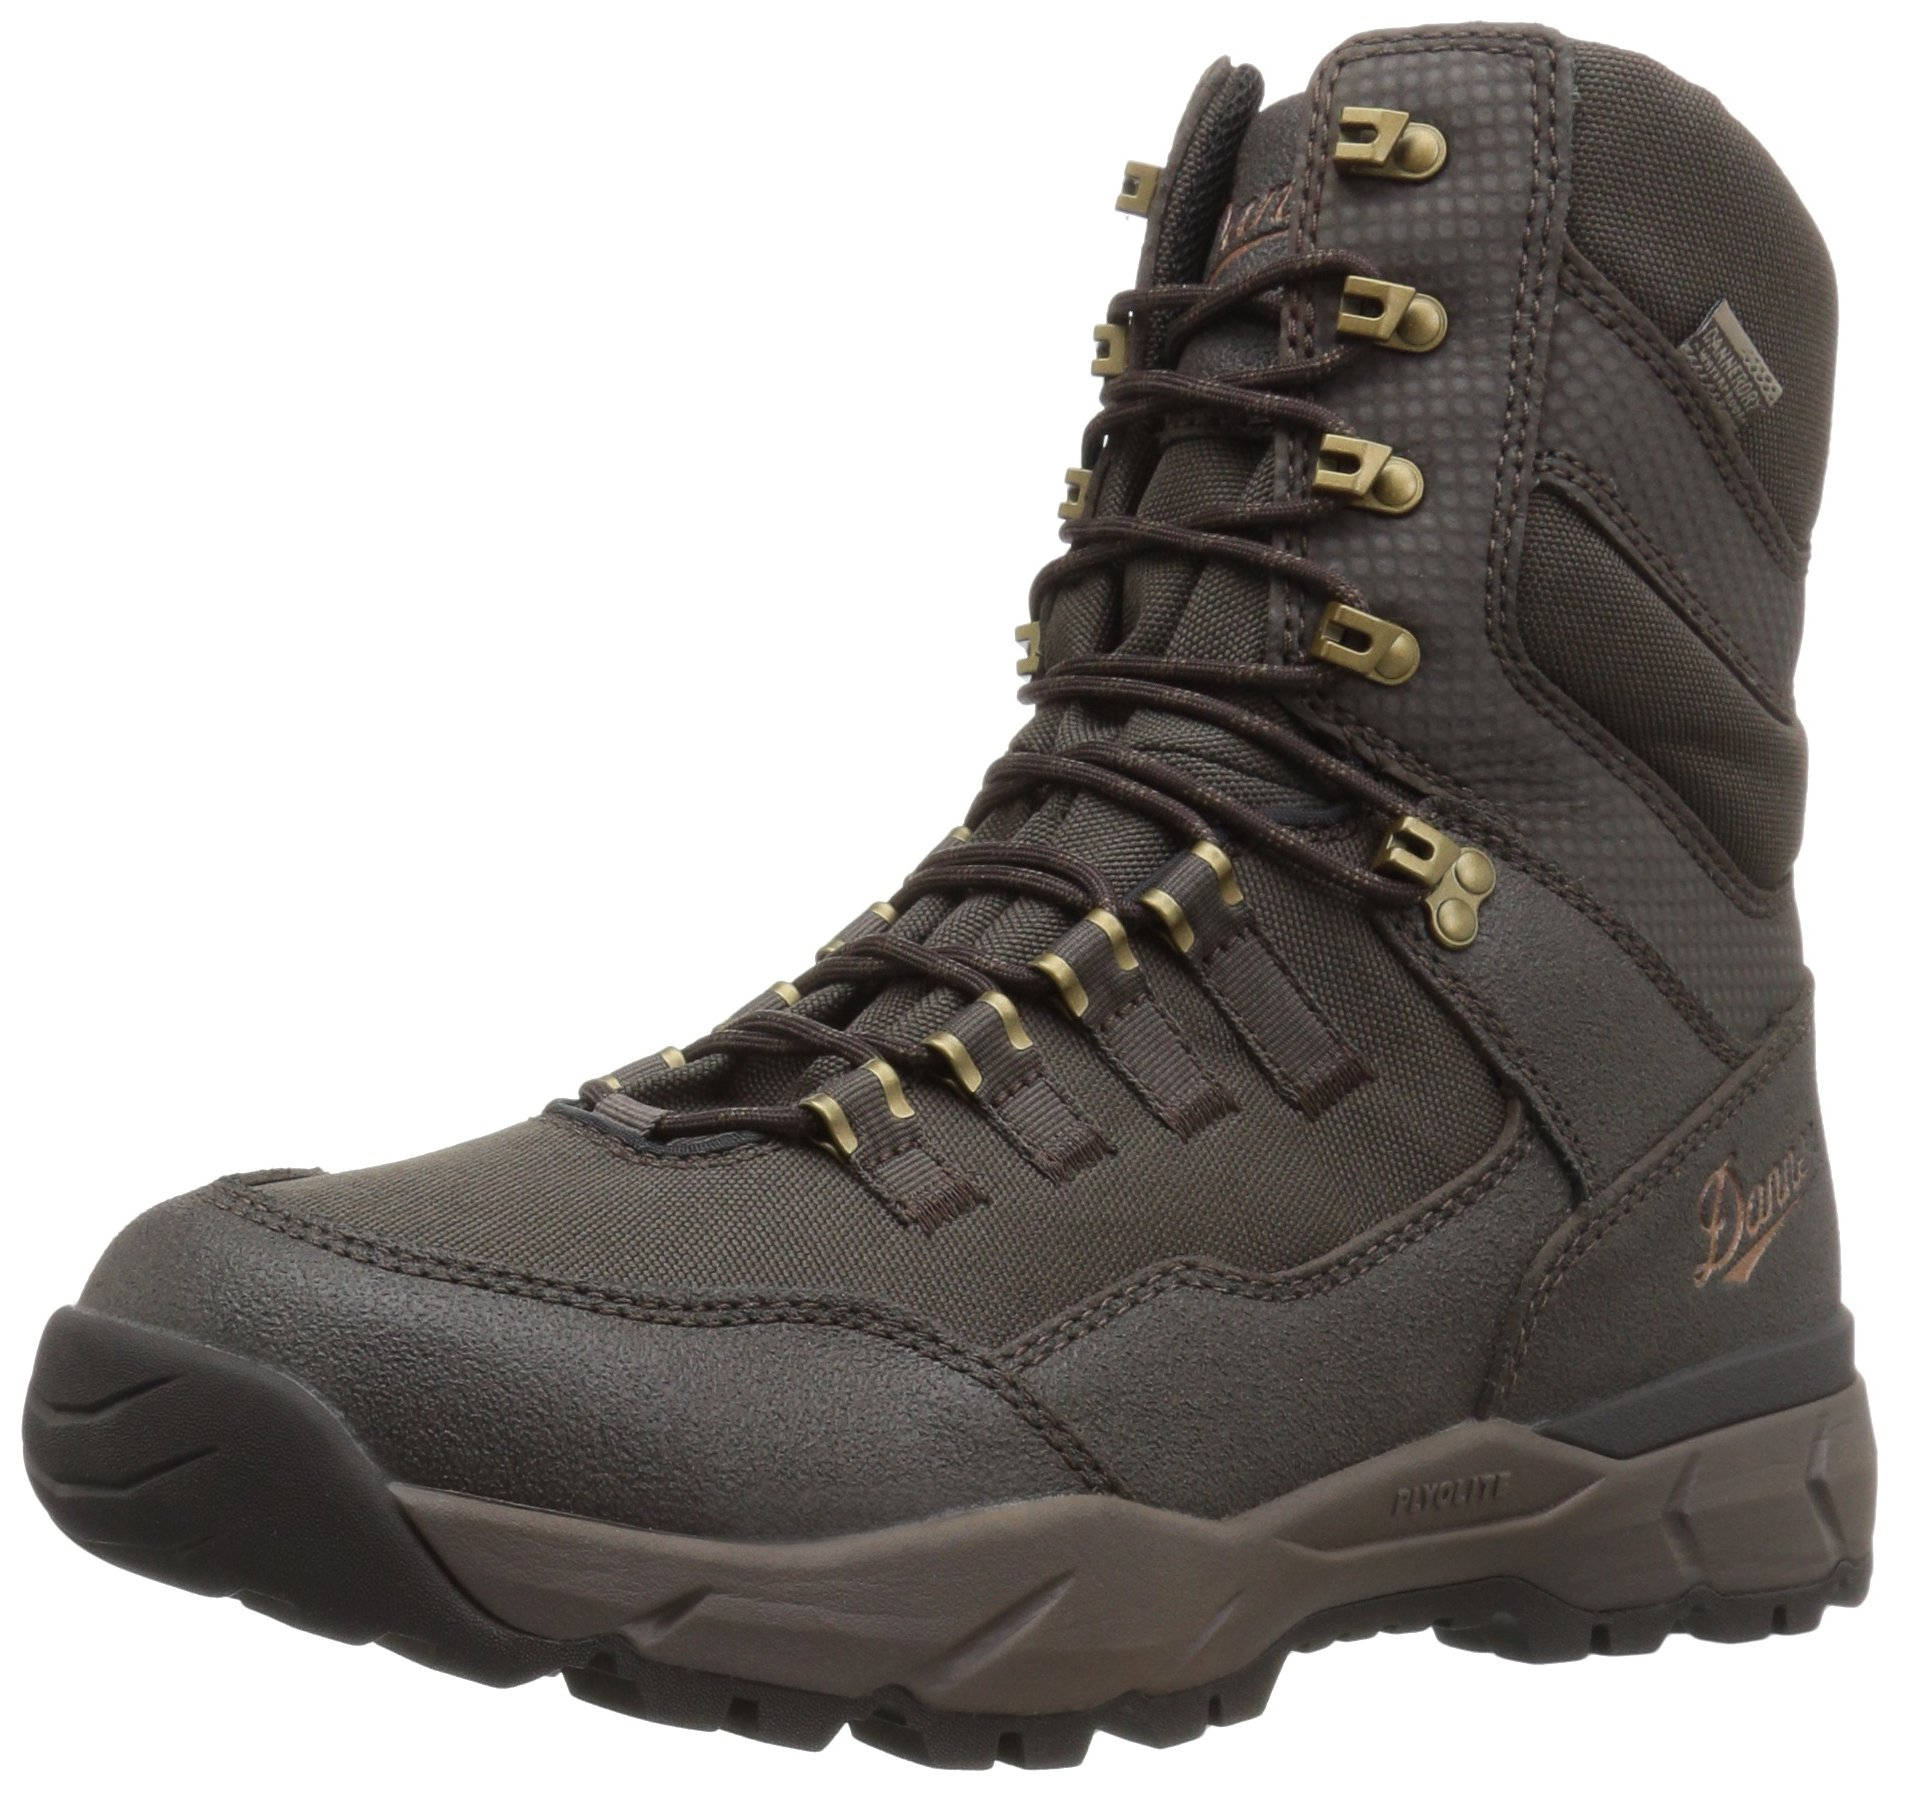 Danner Men's Vital Hunting Shoes, Brown, 7 D US